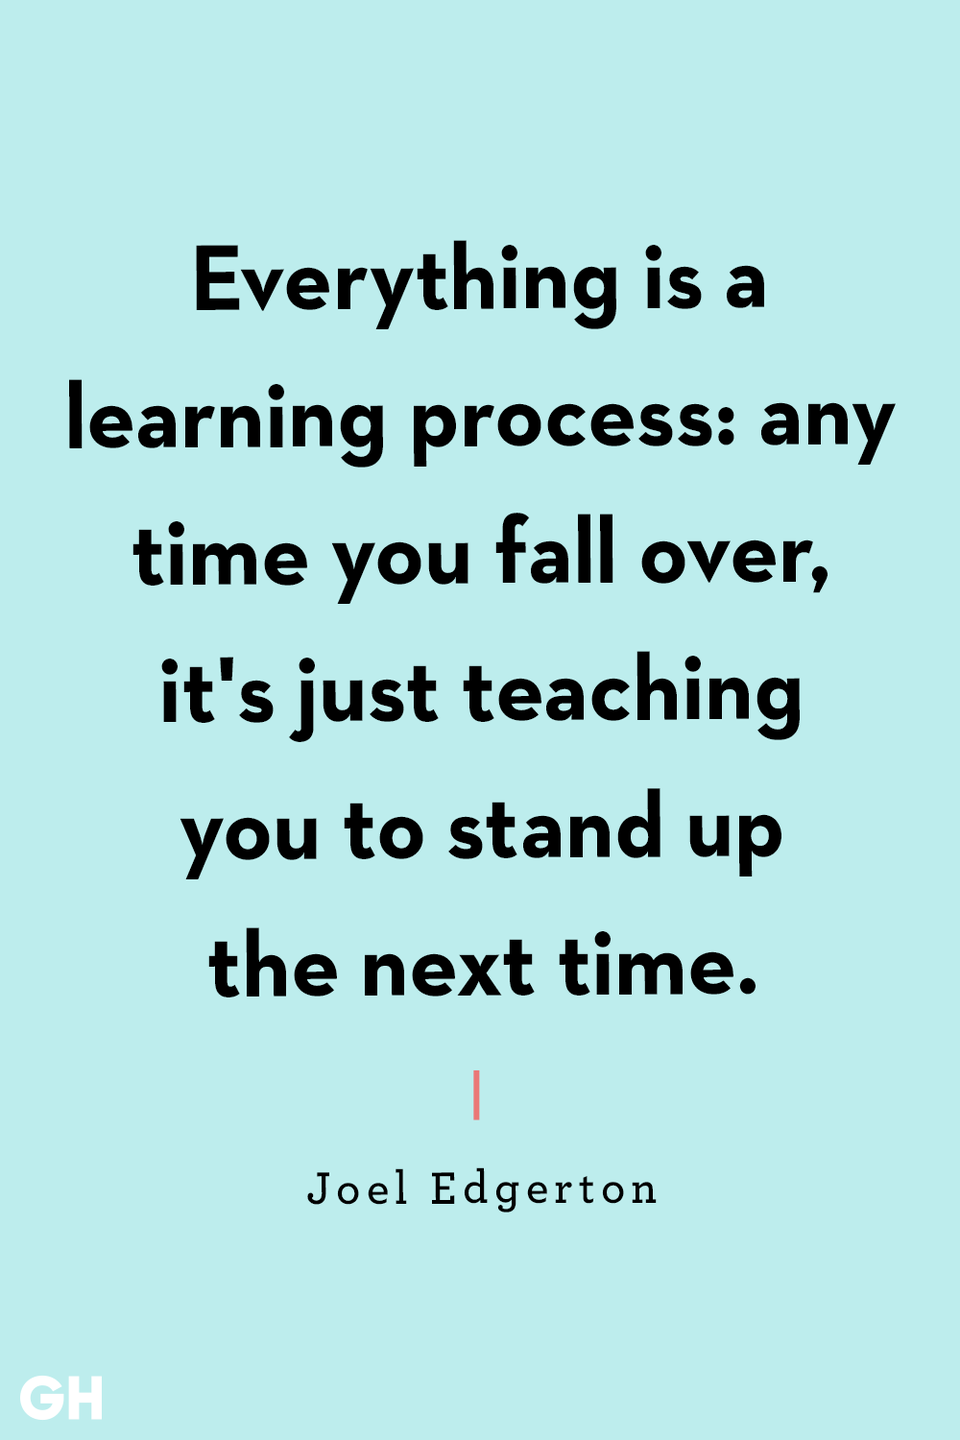 <p>Everything is a learning process: any time you fall over, it's just teaching you to stand up the next time.</p>